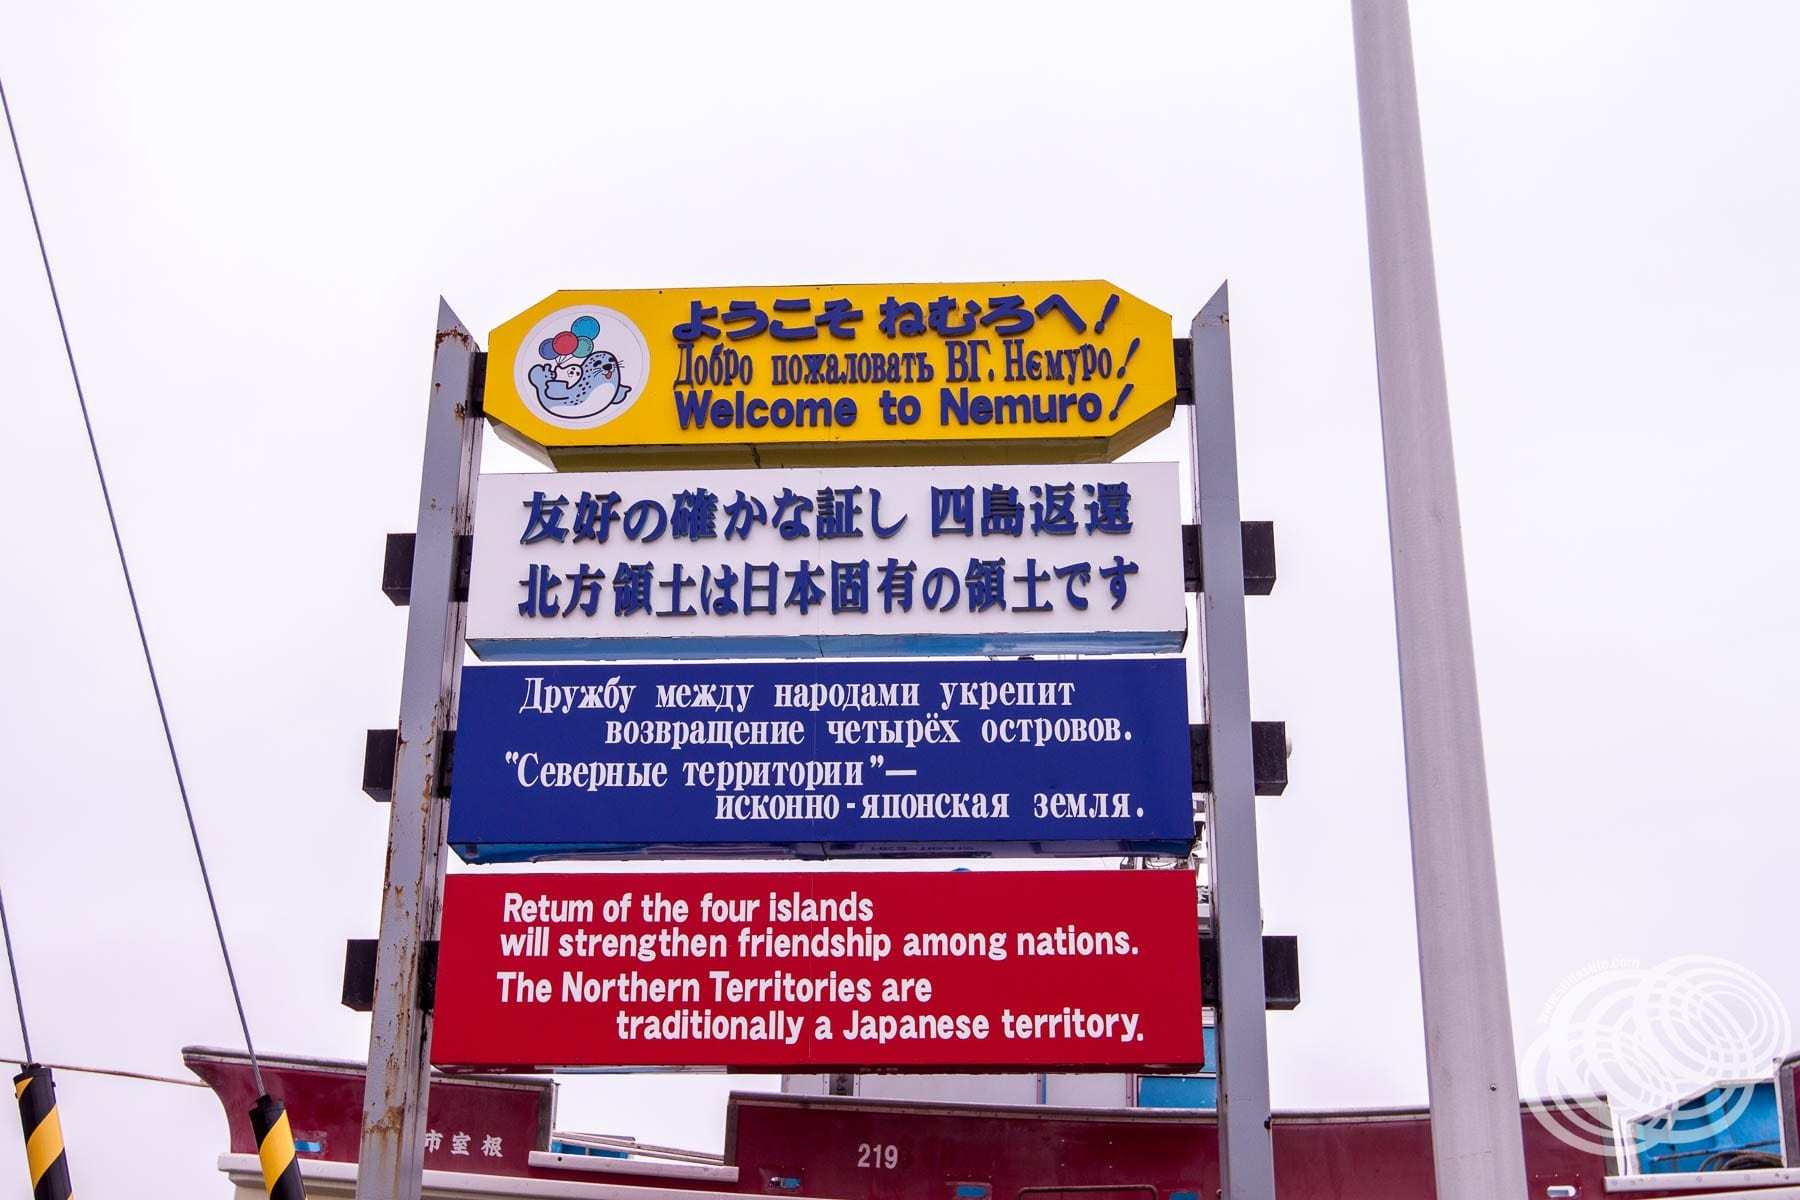 Unlikely: Japanese, Russian and English on this sign at Hanasakiminato, Nemuro.